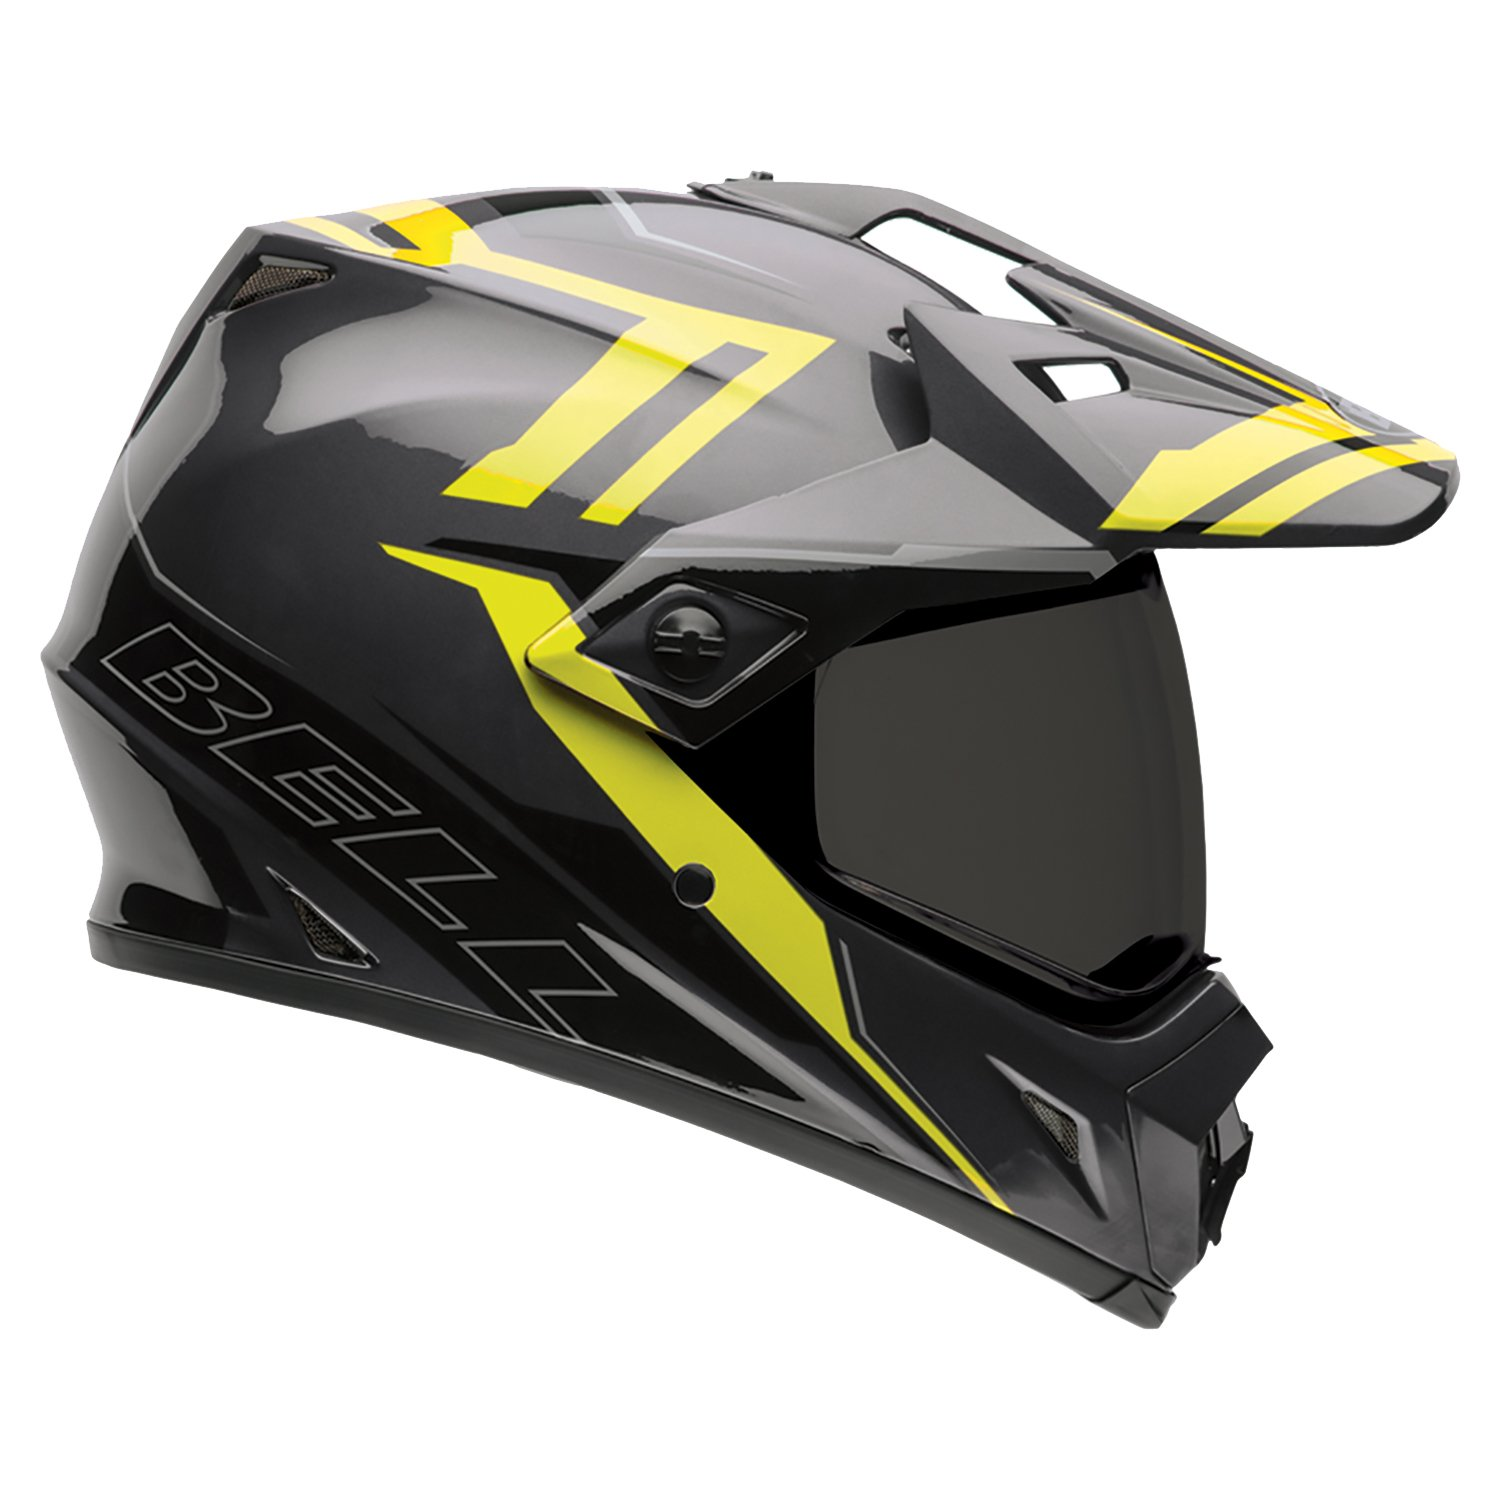 Bell Caschi MX 2015 MX-9 SolidHigh Visiblity Adventure Adult Casco, Matte Barricade, M